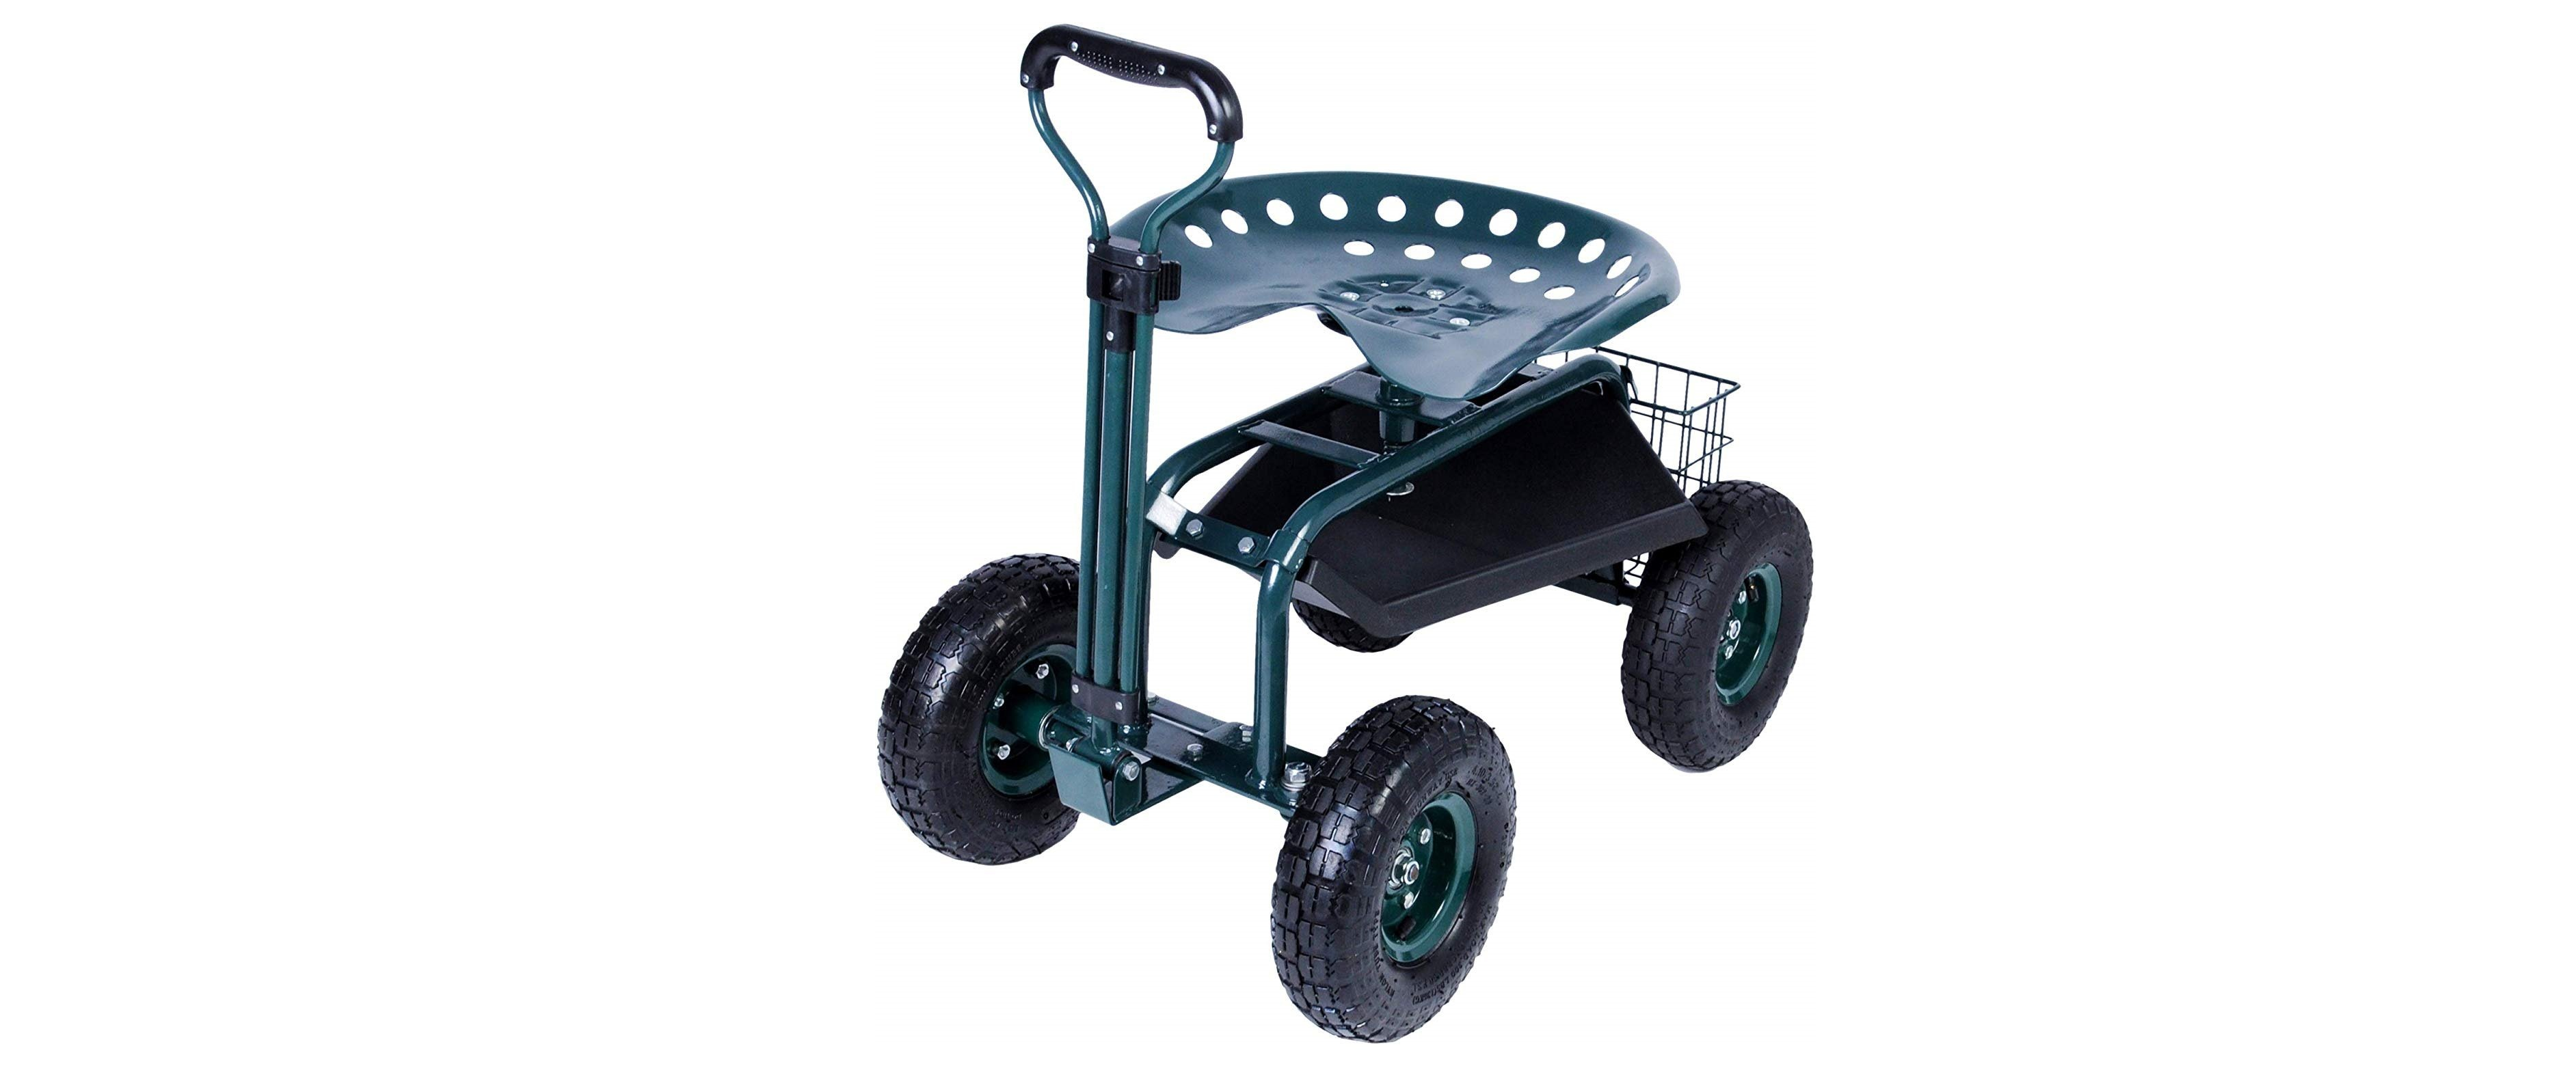 KARMAS PRODUCT Steerable Garden Stool Cart Review